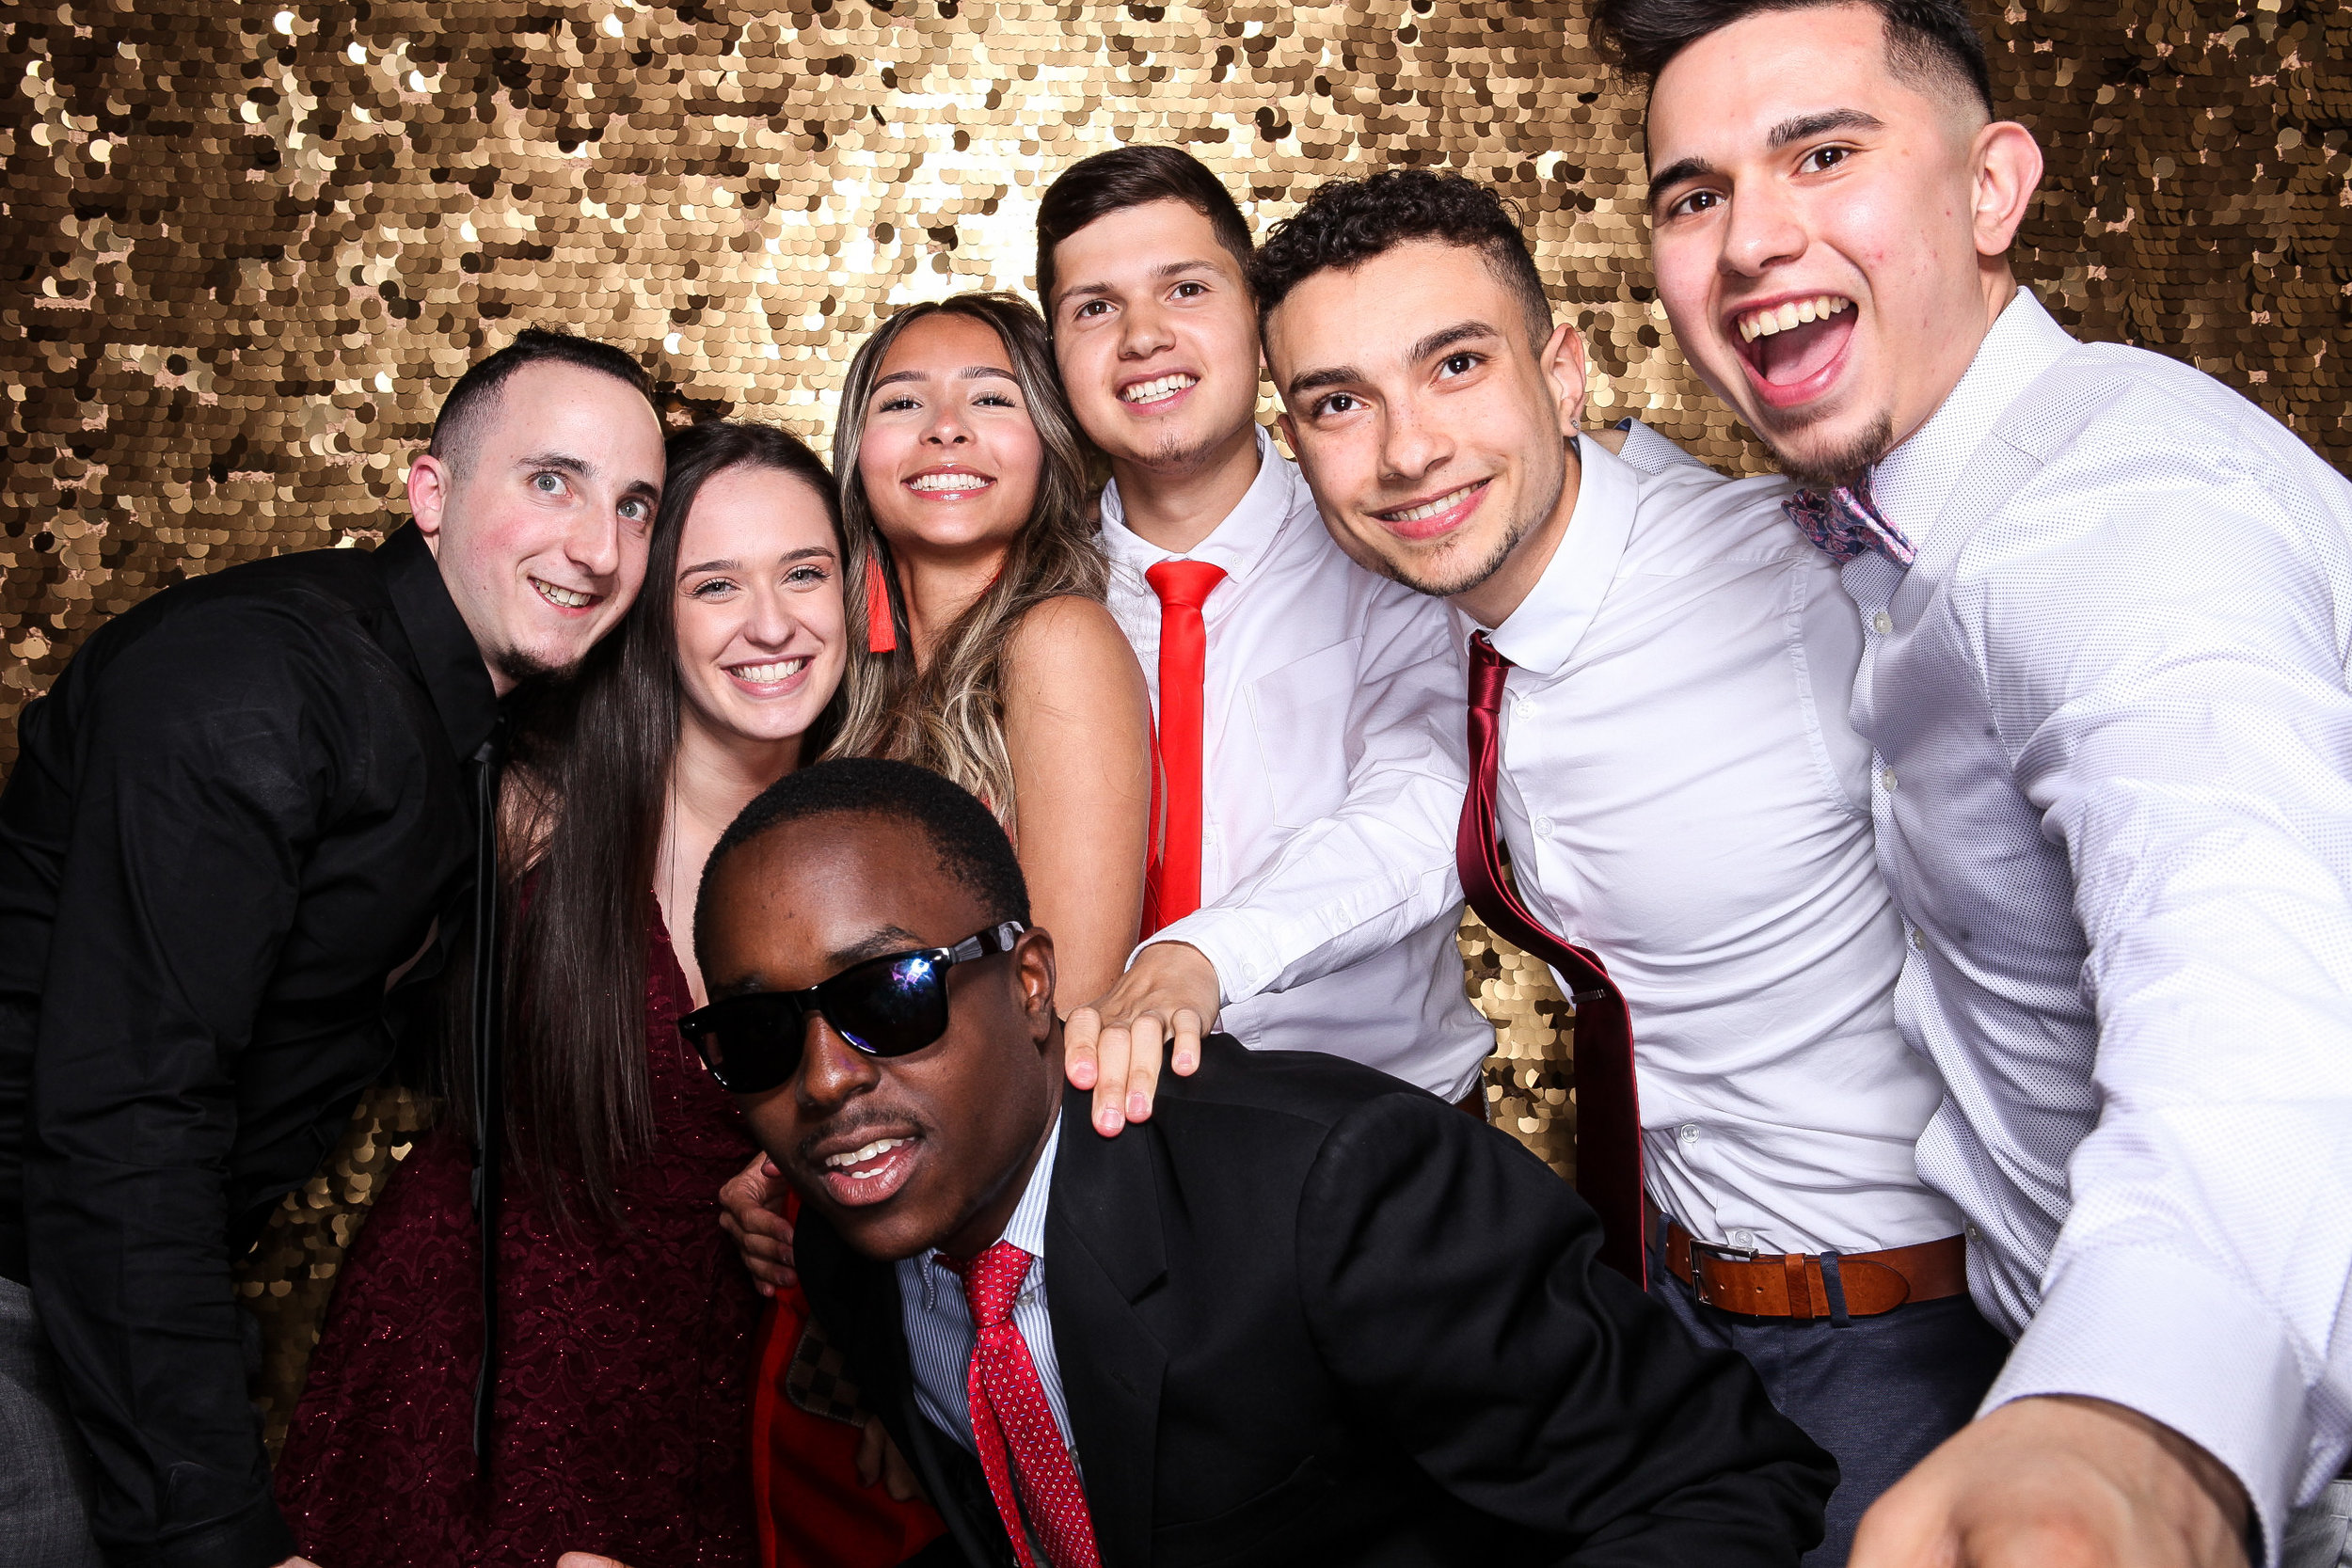 20190503_Adelphi_Senior_Formal-107.jpg